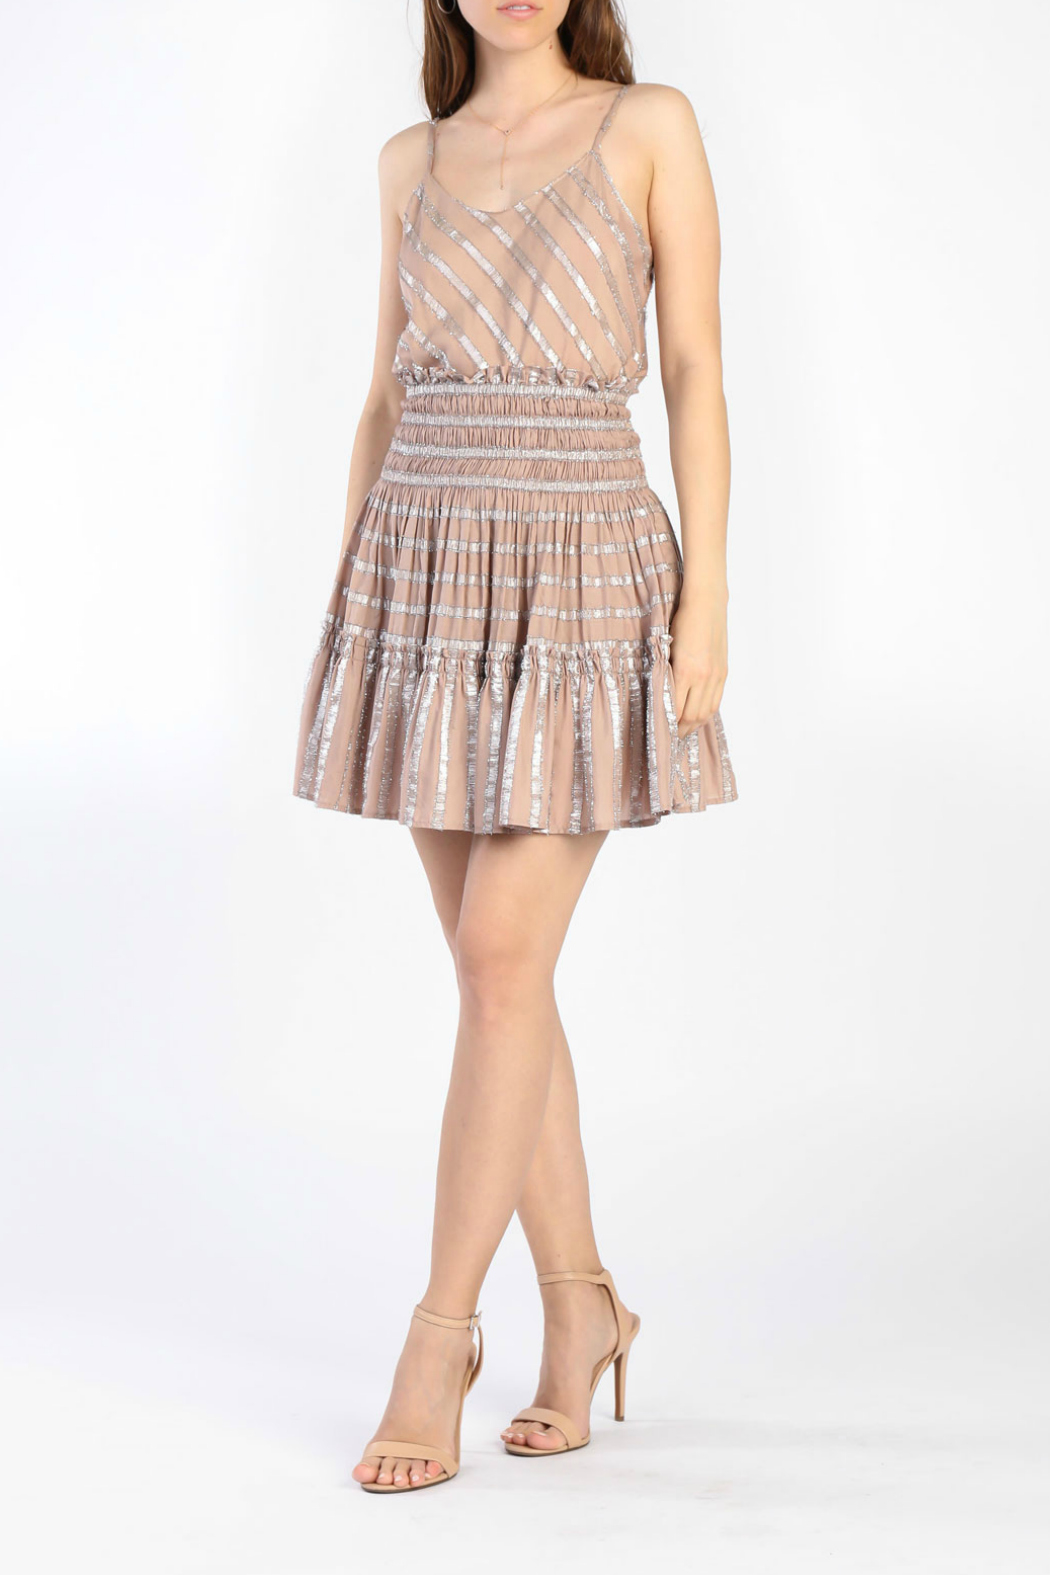 Current Air Smocked tiered short skirt - Side Cropped Image